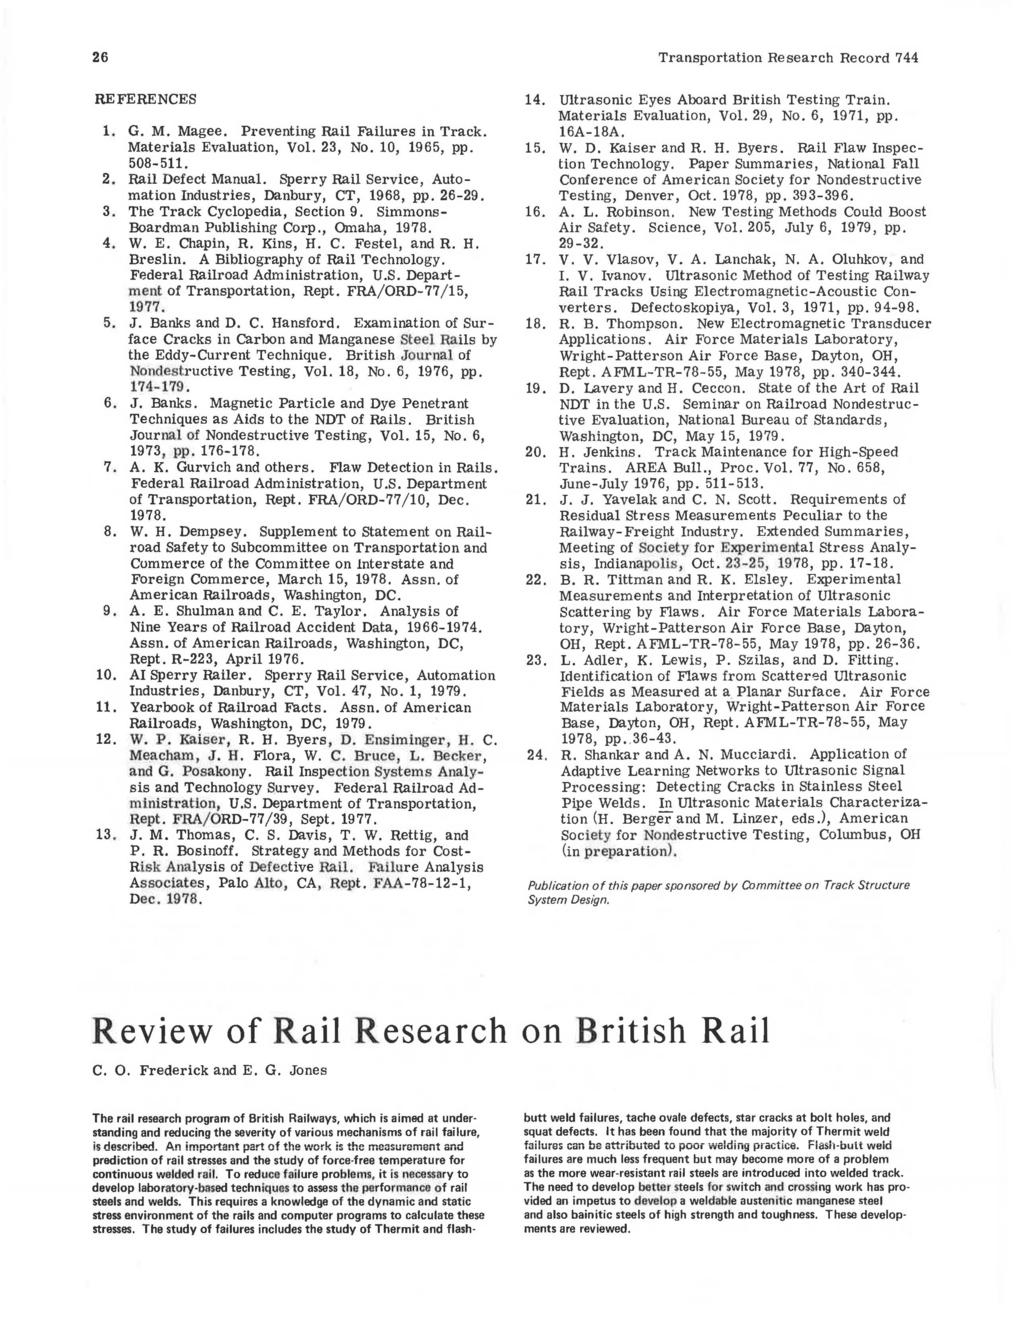 26 REFERENCES 1. G. M. Magee. Preventing Rail Failures in Track. Materials Evaluation, Vol. 23, No. 10, 1965, pp. 508-511. 2. Rail Defect Manual.